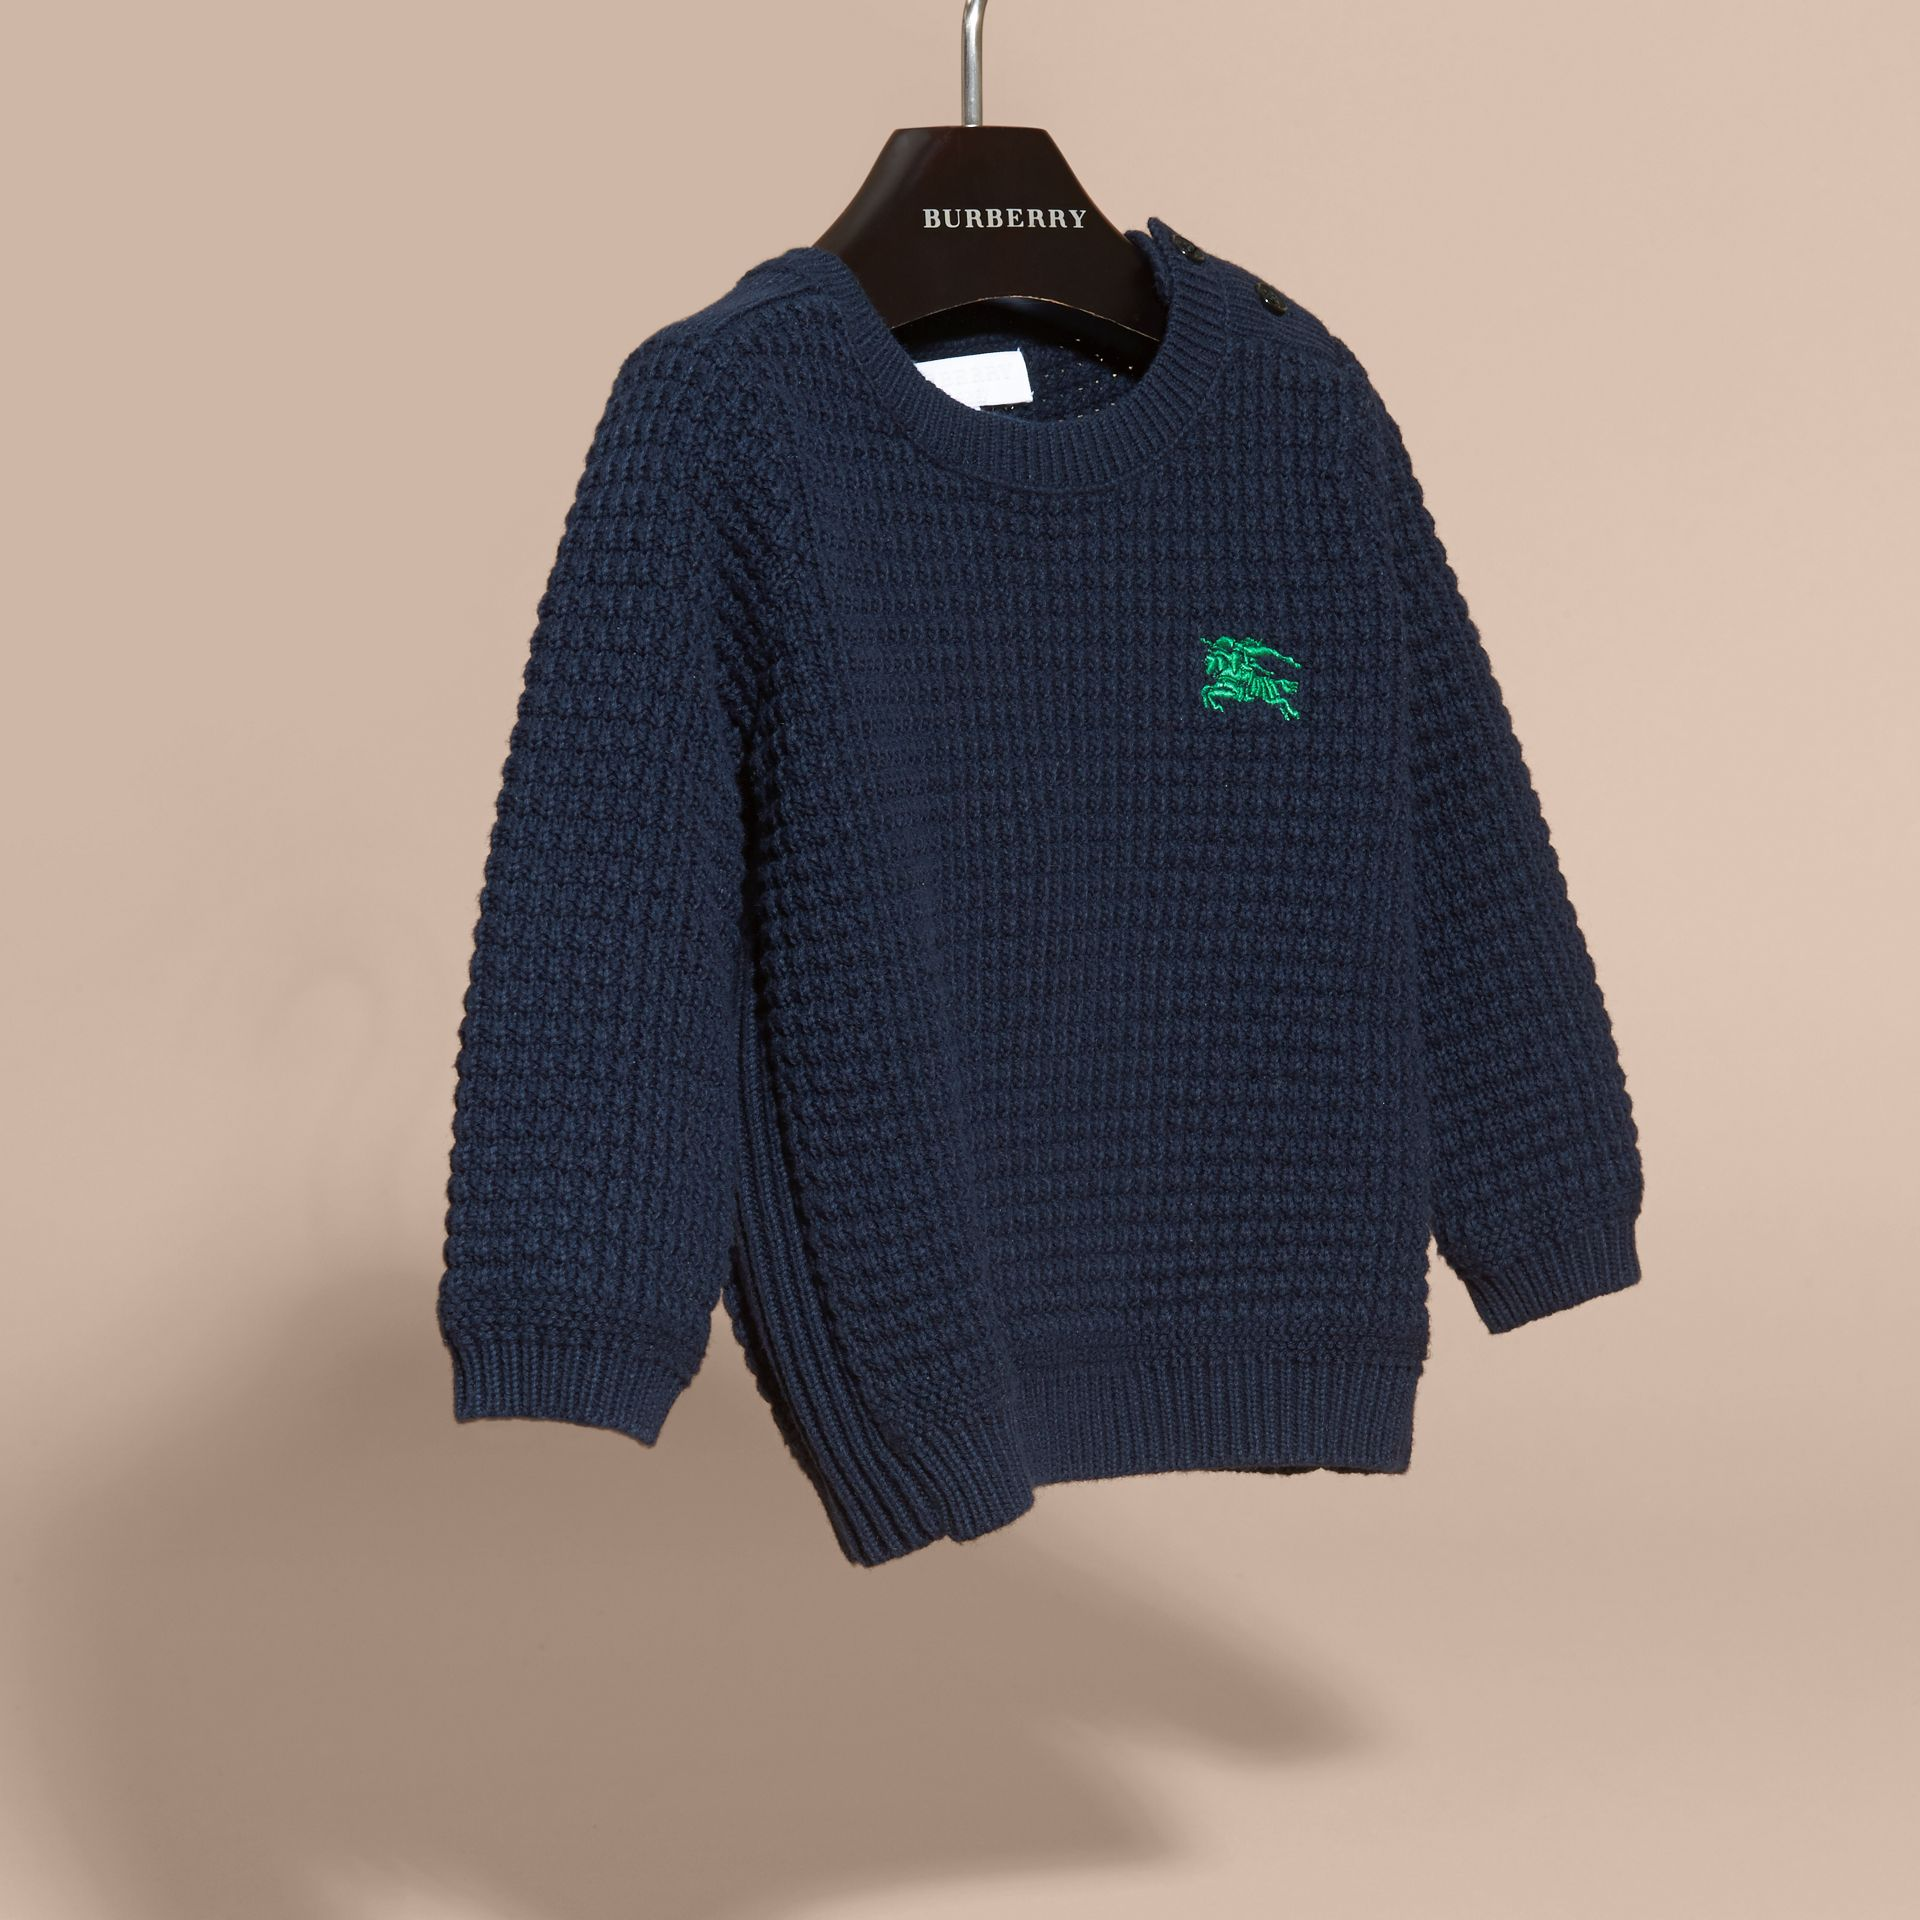 Waffle Knit Cotton Sweater in Navy | Burberry - gallery image 2